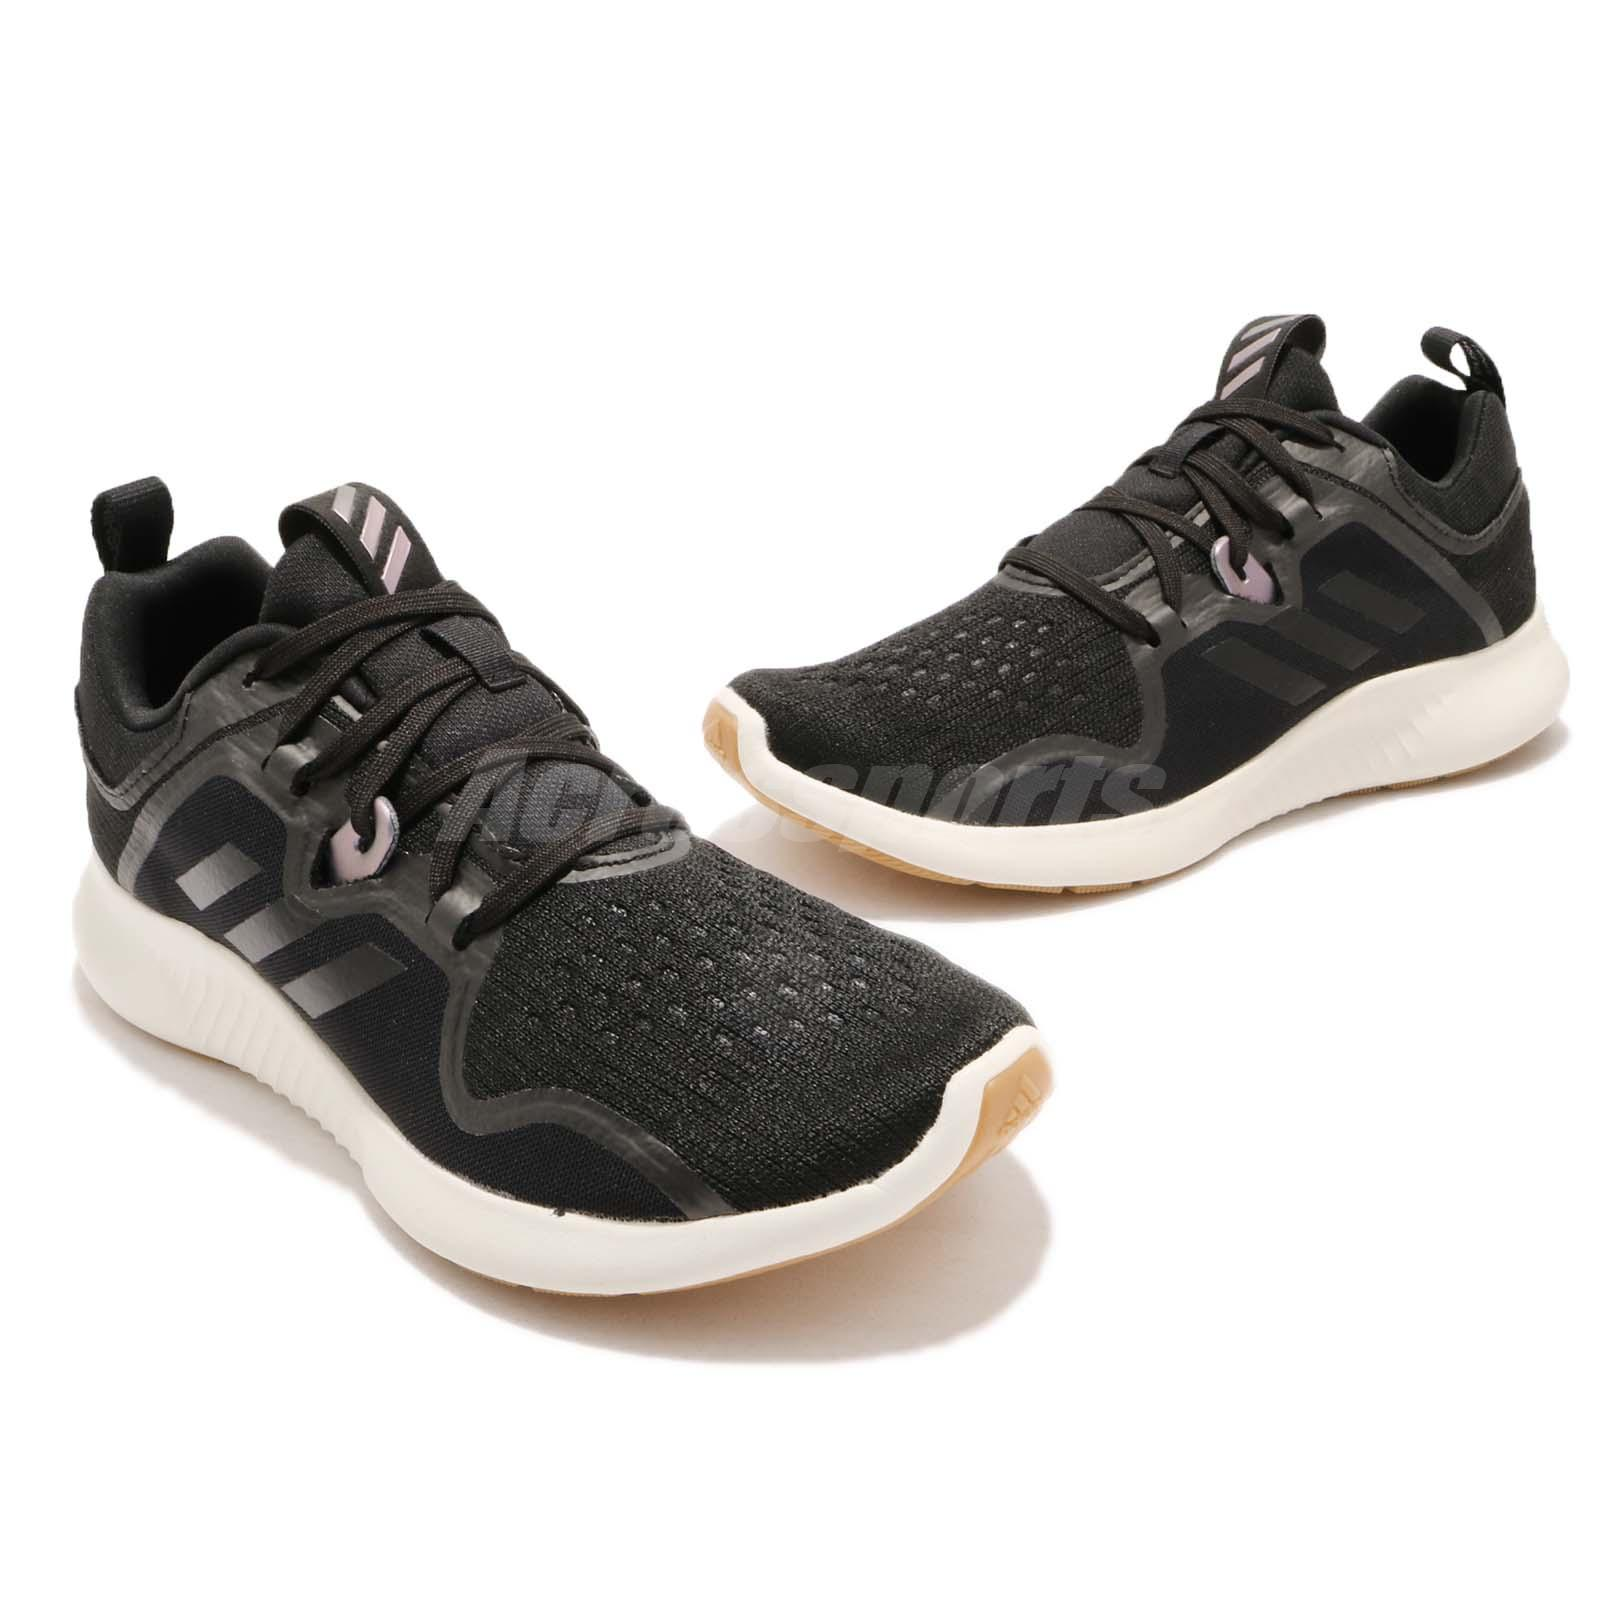 b7beb04f7 adidas EdgeBOUNCE W Black White Gum BOUNCE Cushion Womens Running ...